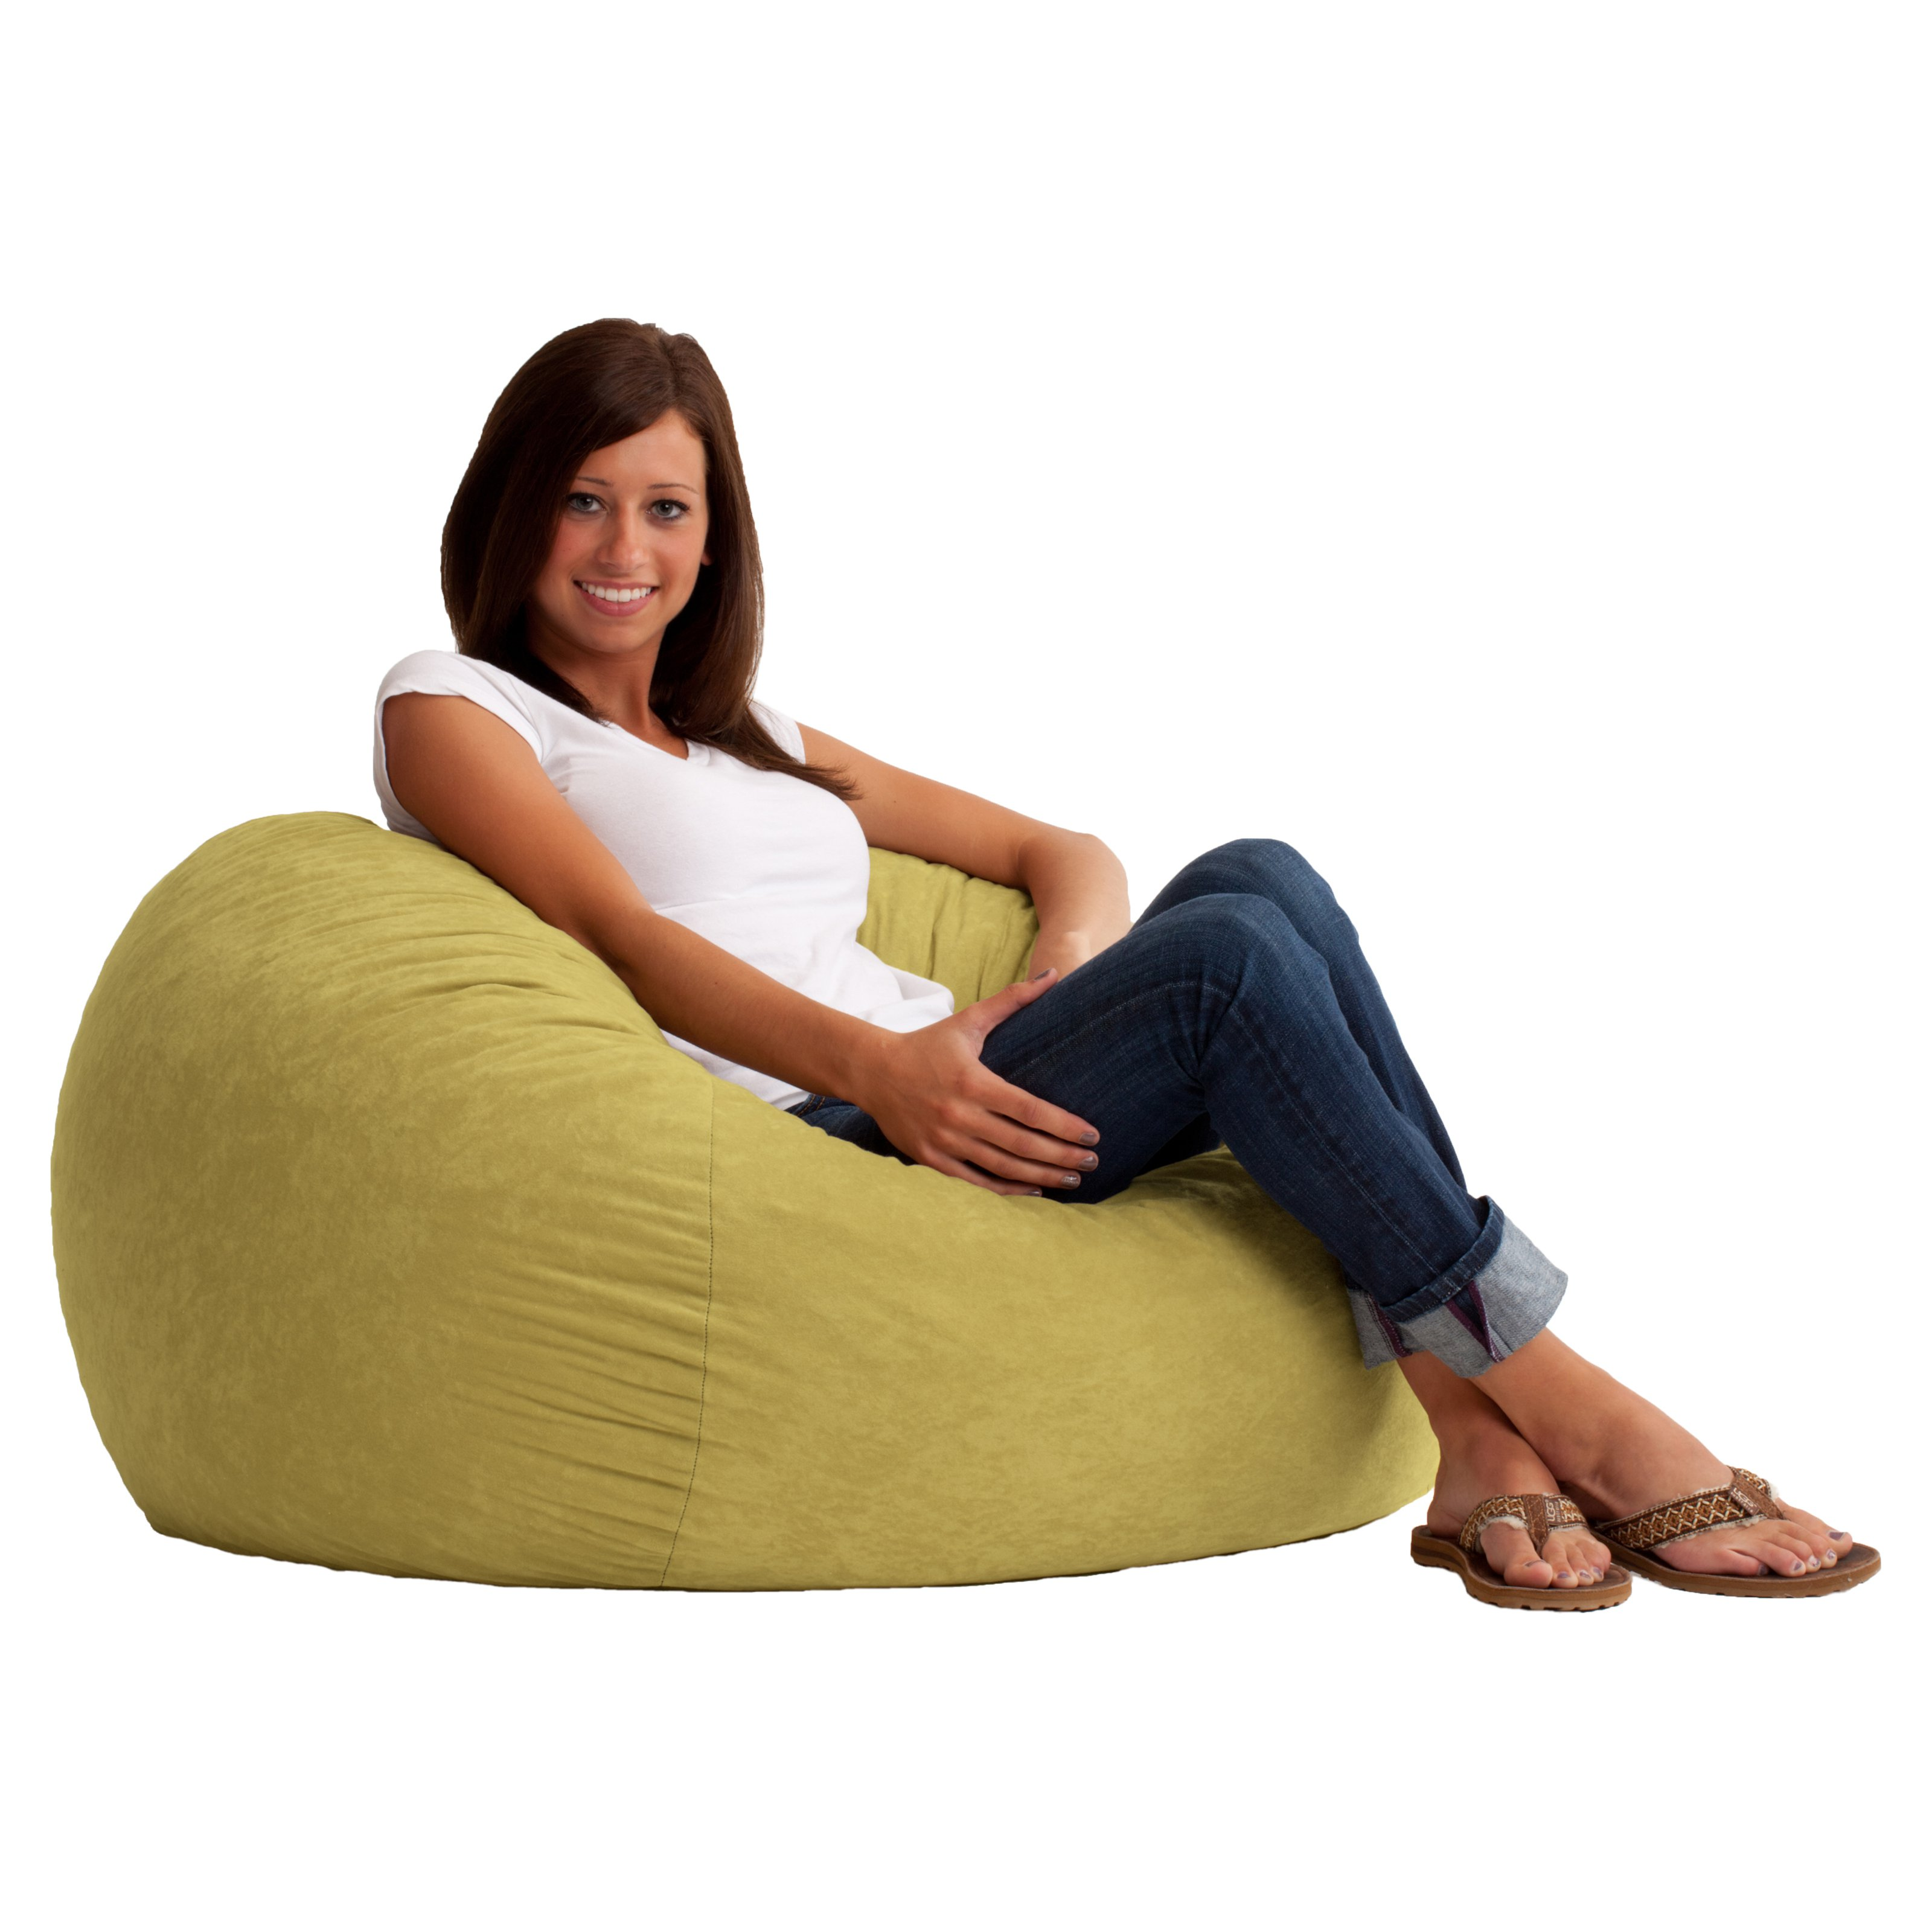 big joe bean bag chair multiple colors 33 x 32 25 mima moon high 3 39 fuf comfort suede ebay